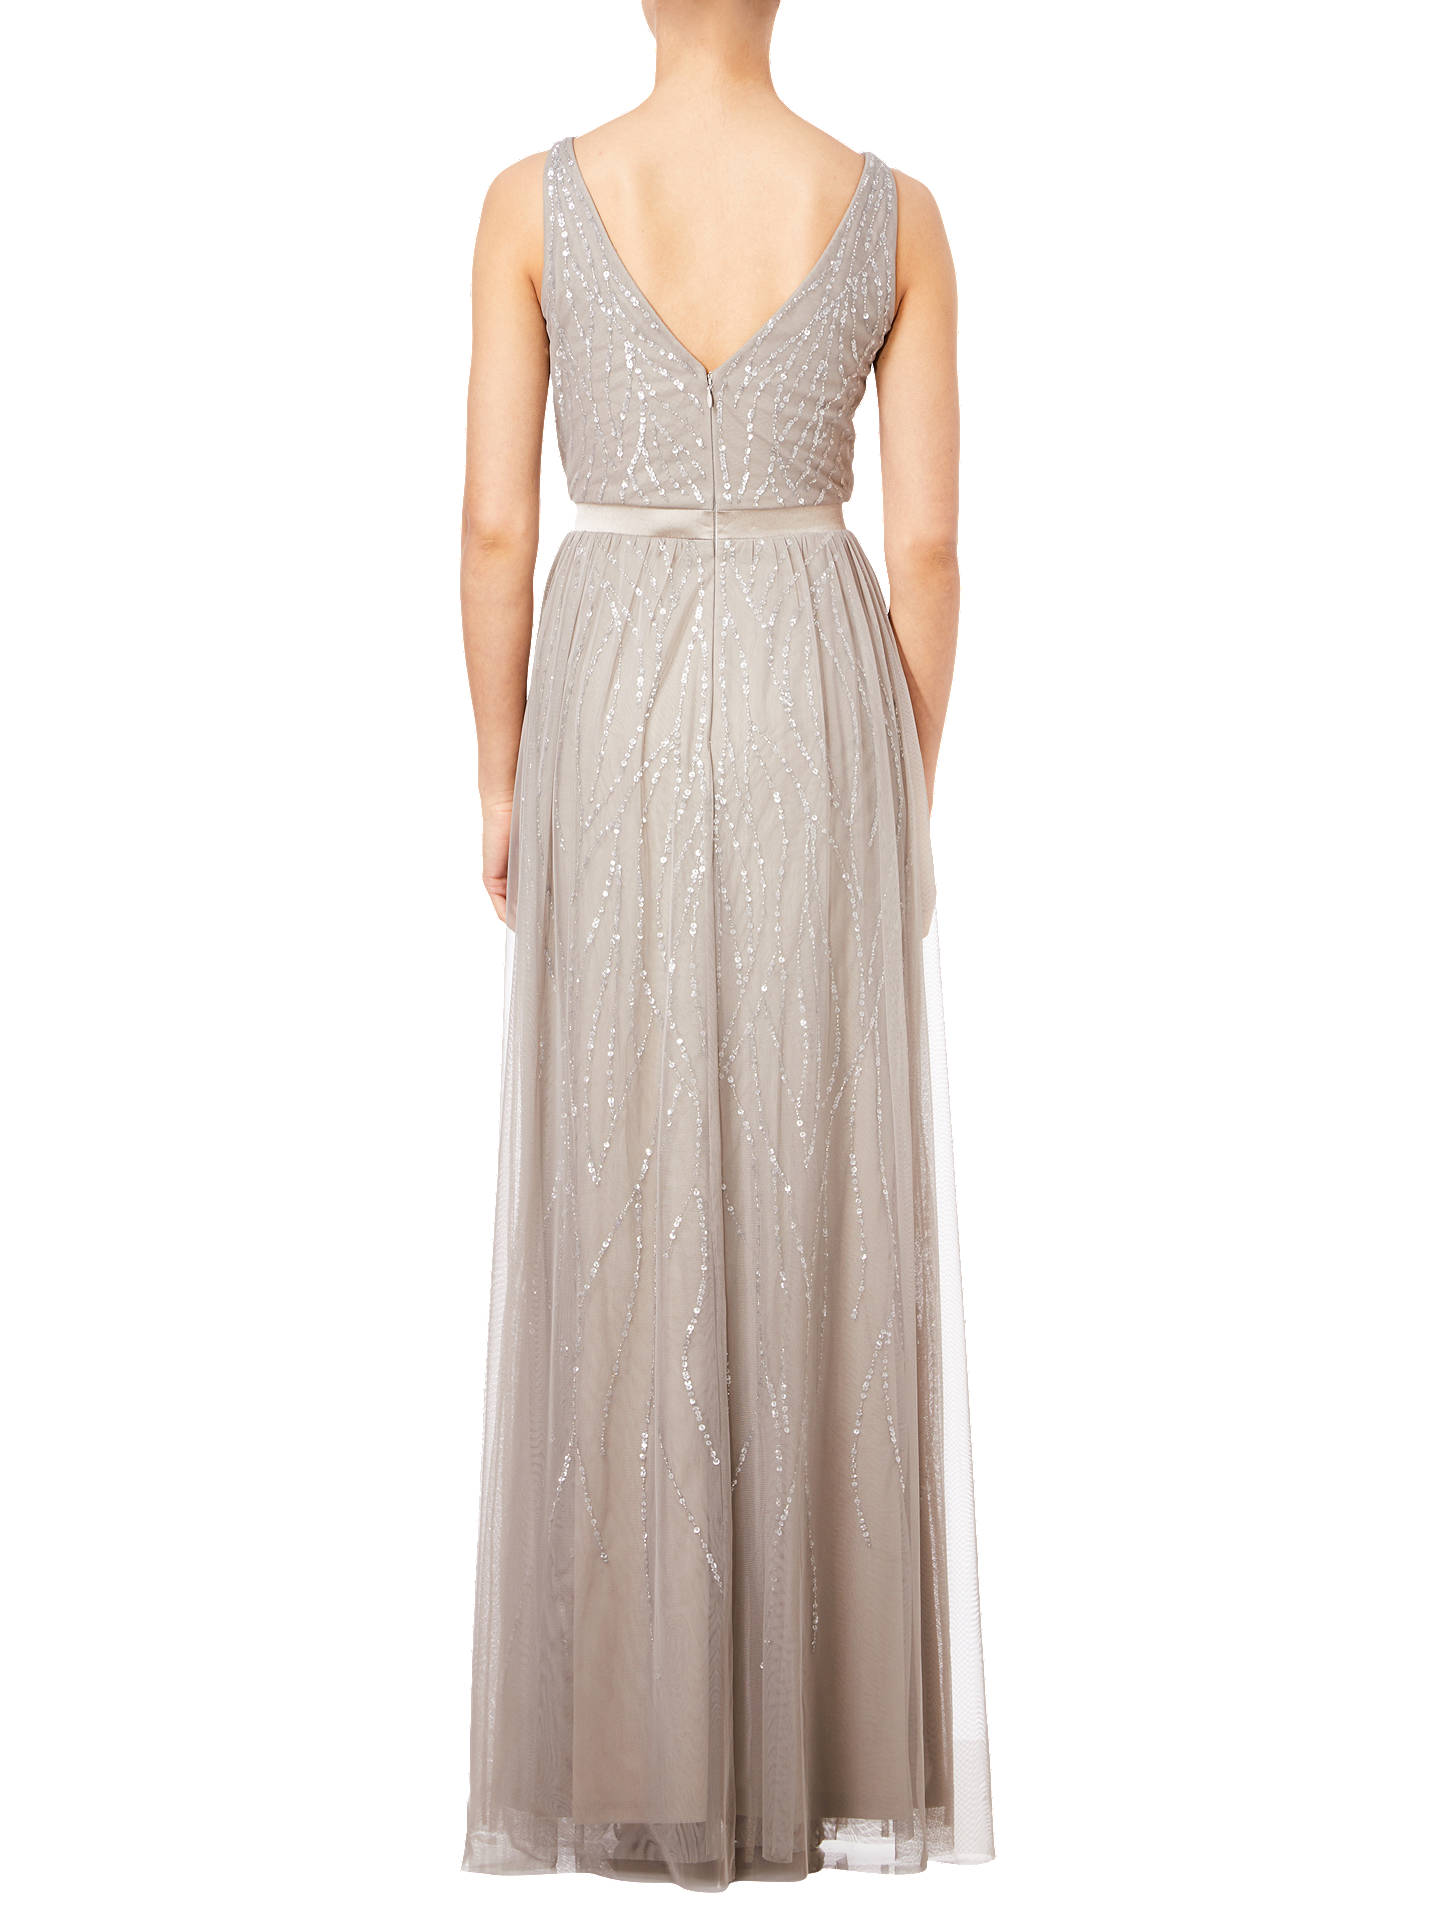 Buy Adrianna Papell Platinum Beaded Sleeveless Dress, Grey, 6 Online at johnlewis.com